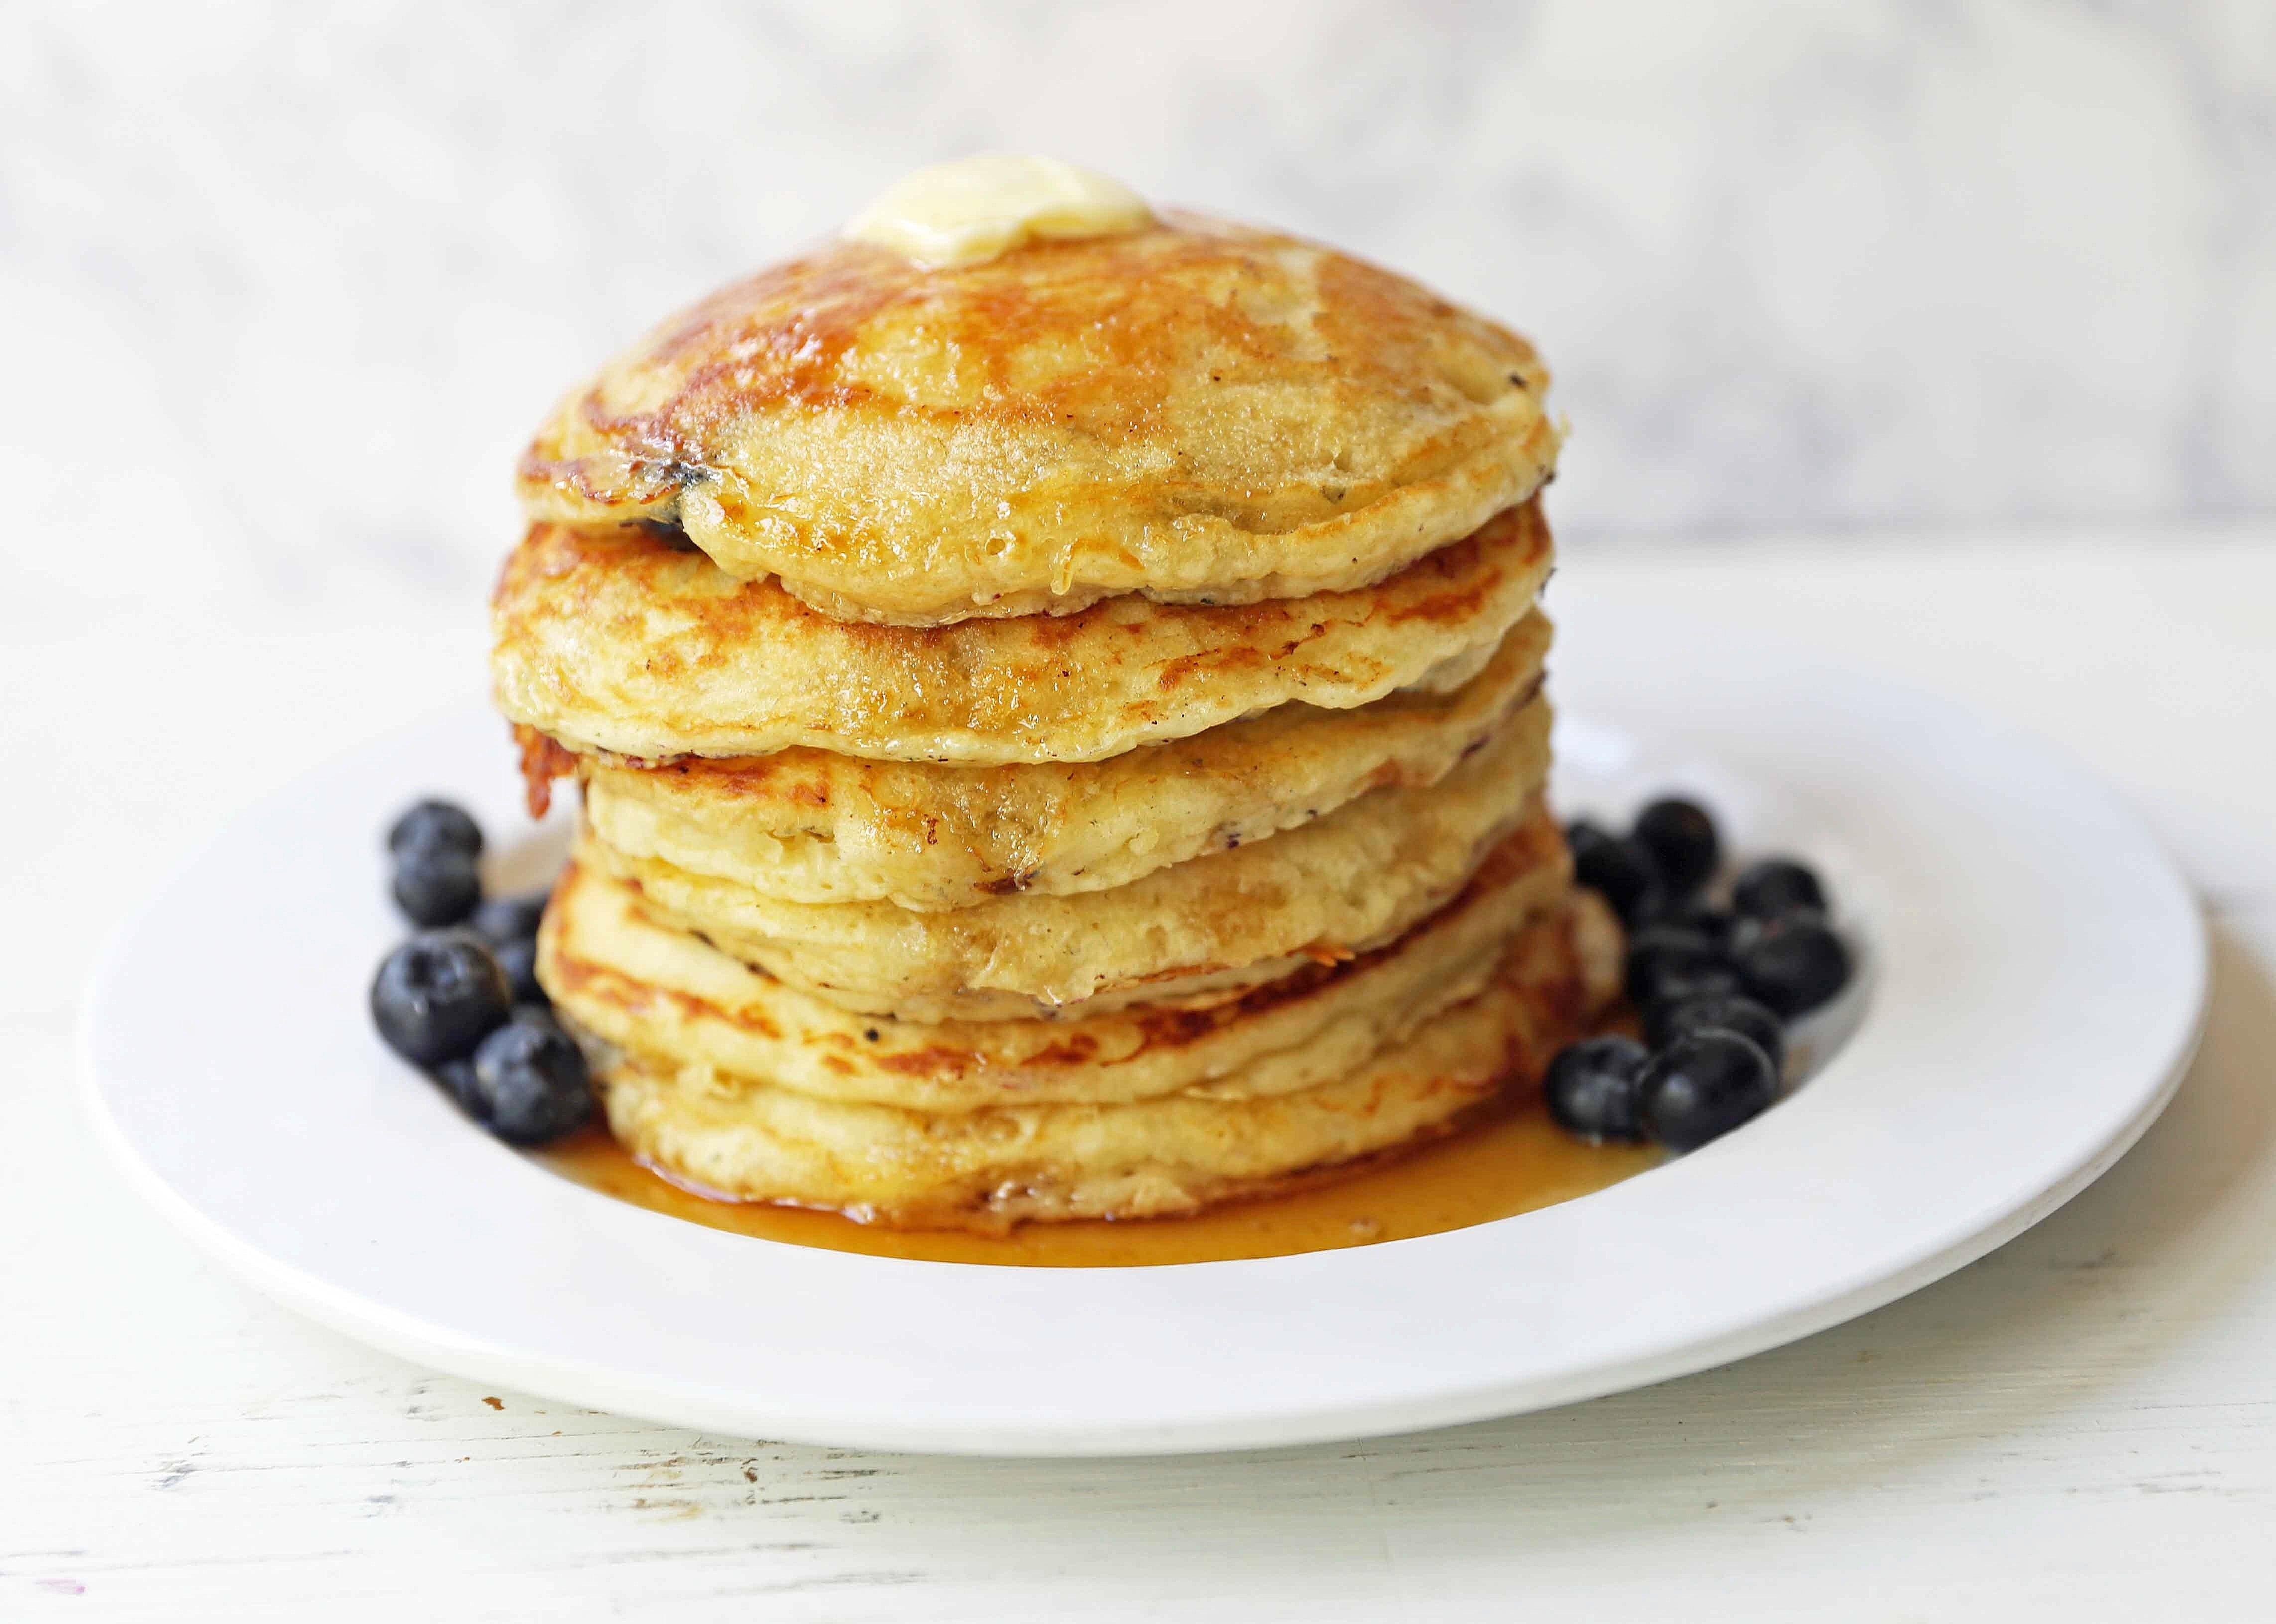 Homemade Blueberry Buttermilk Pancakes are light and fluffy. How to make the perfect blueberry pancakes. Tips and tricks for making the best blueberry pancakes. www.modernhoney.com #blueberrypancakes #blueberrybuttermilkpancakes #pancakes #pancakerecipes